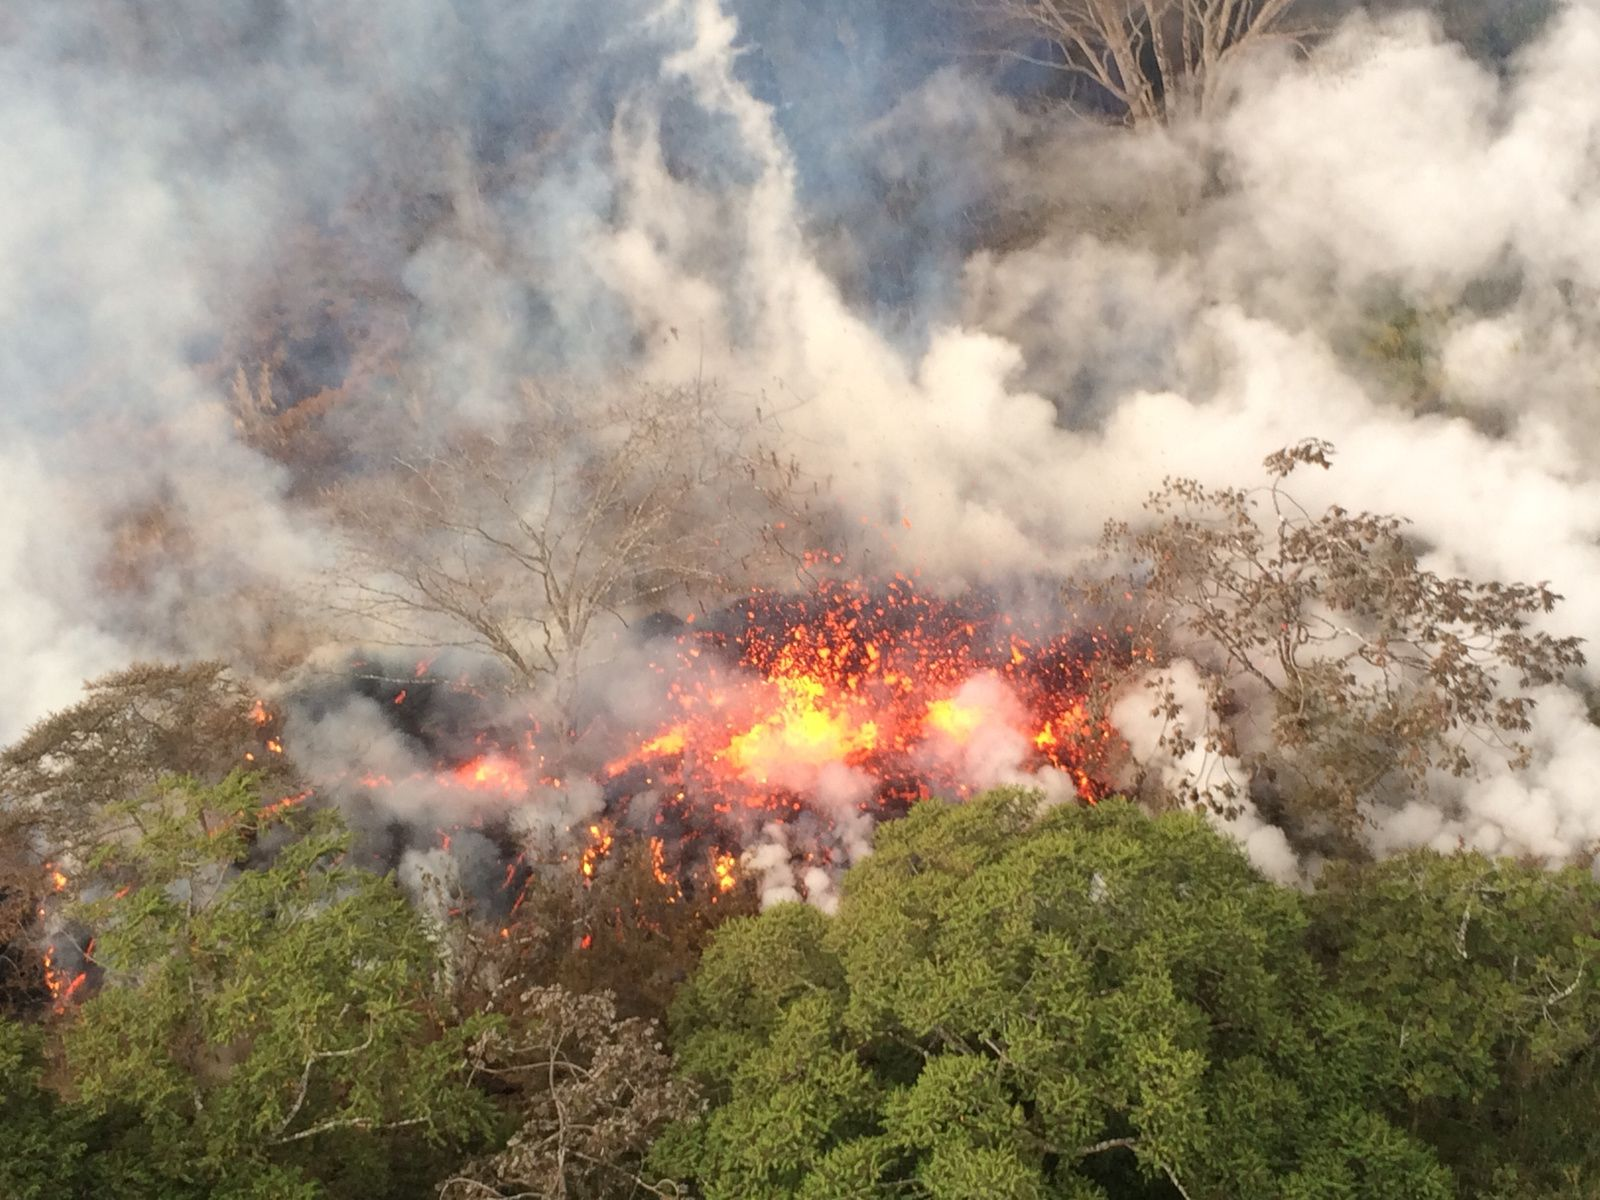 2018.05.16Kilauea Rift Zone ESt - Spattering zone between cracks 16 and 20 at 8:20 and 9:33 - HVO photos